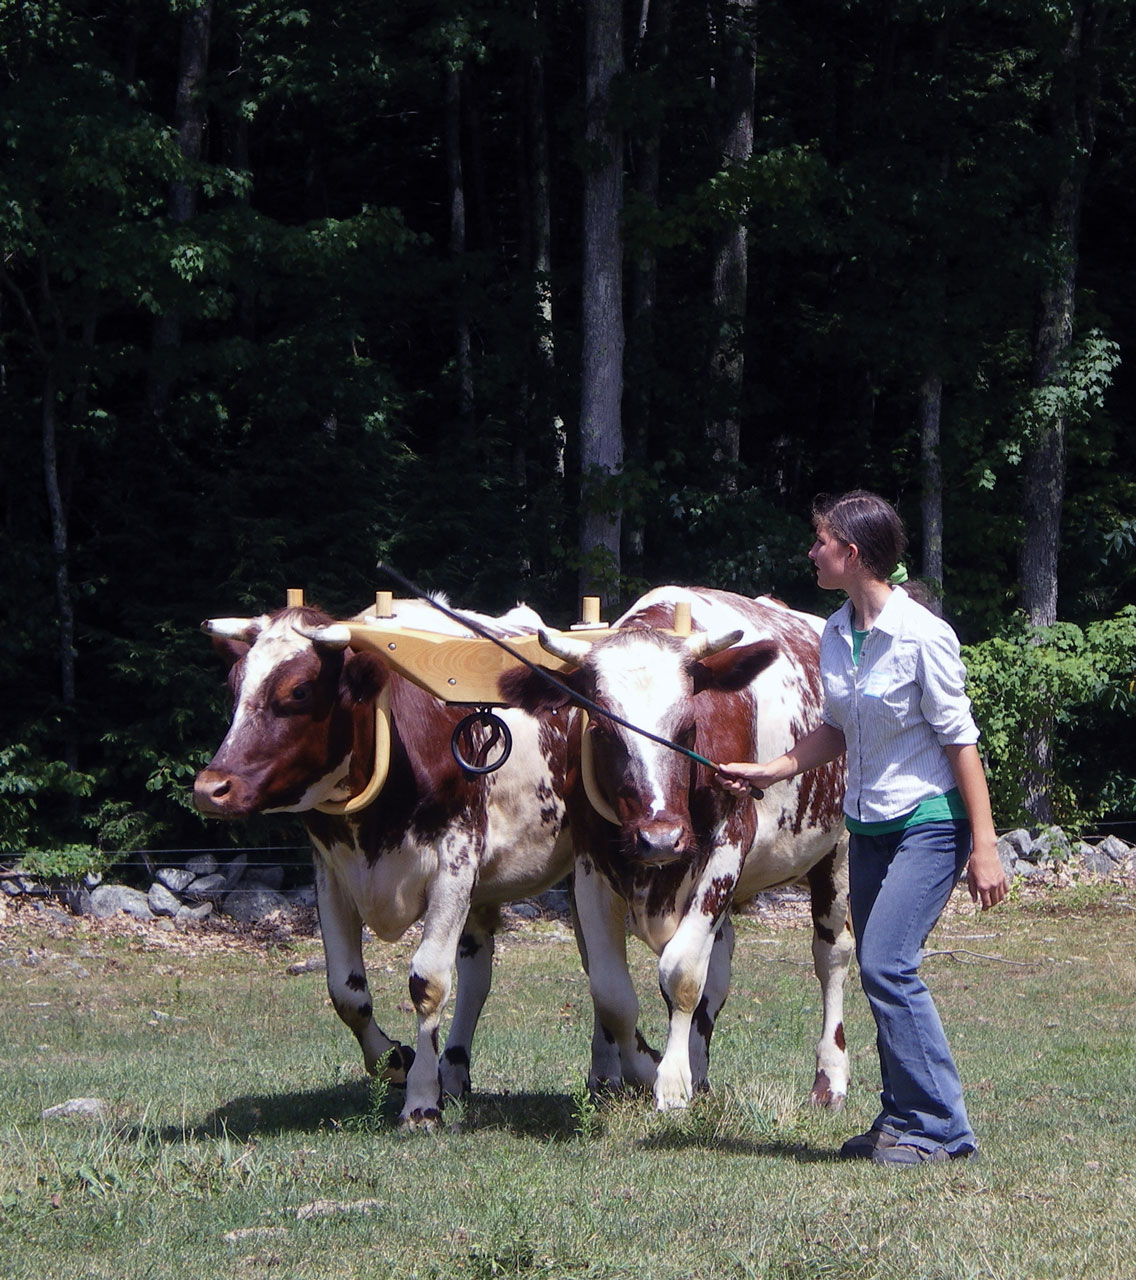 Logging with Oxen in New Hampshire